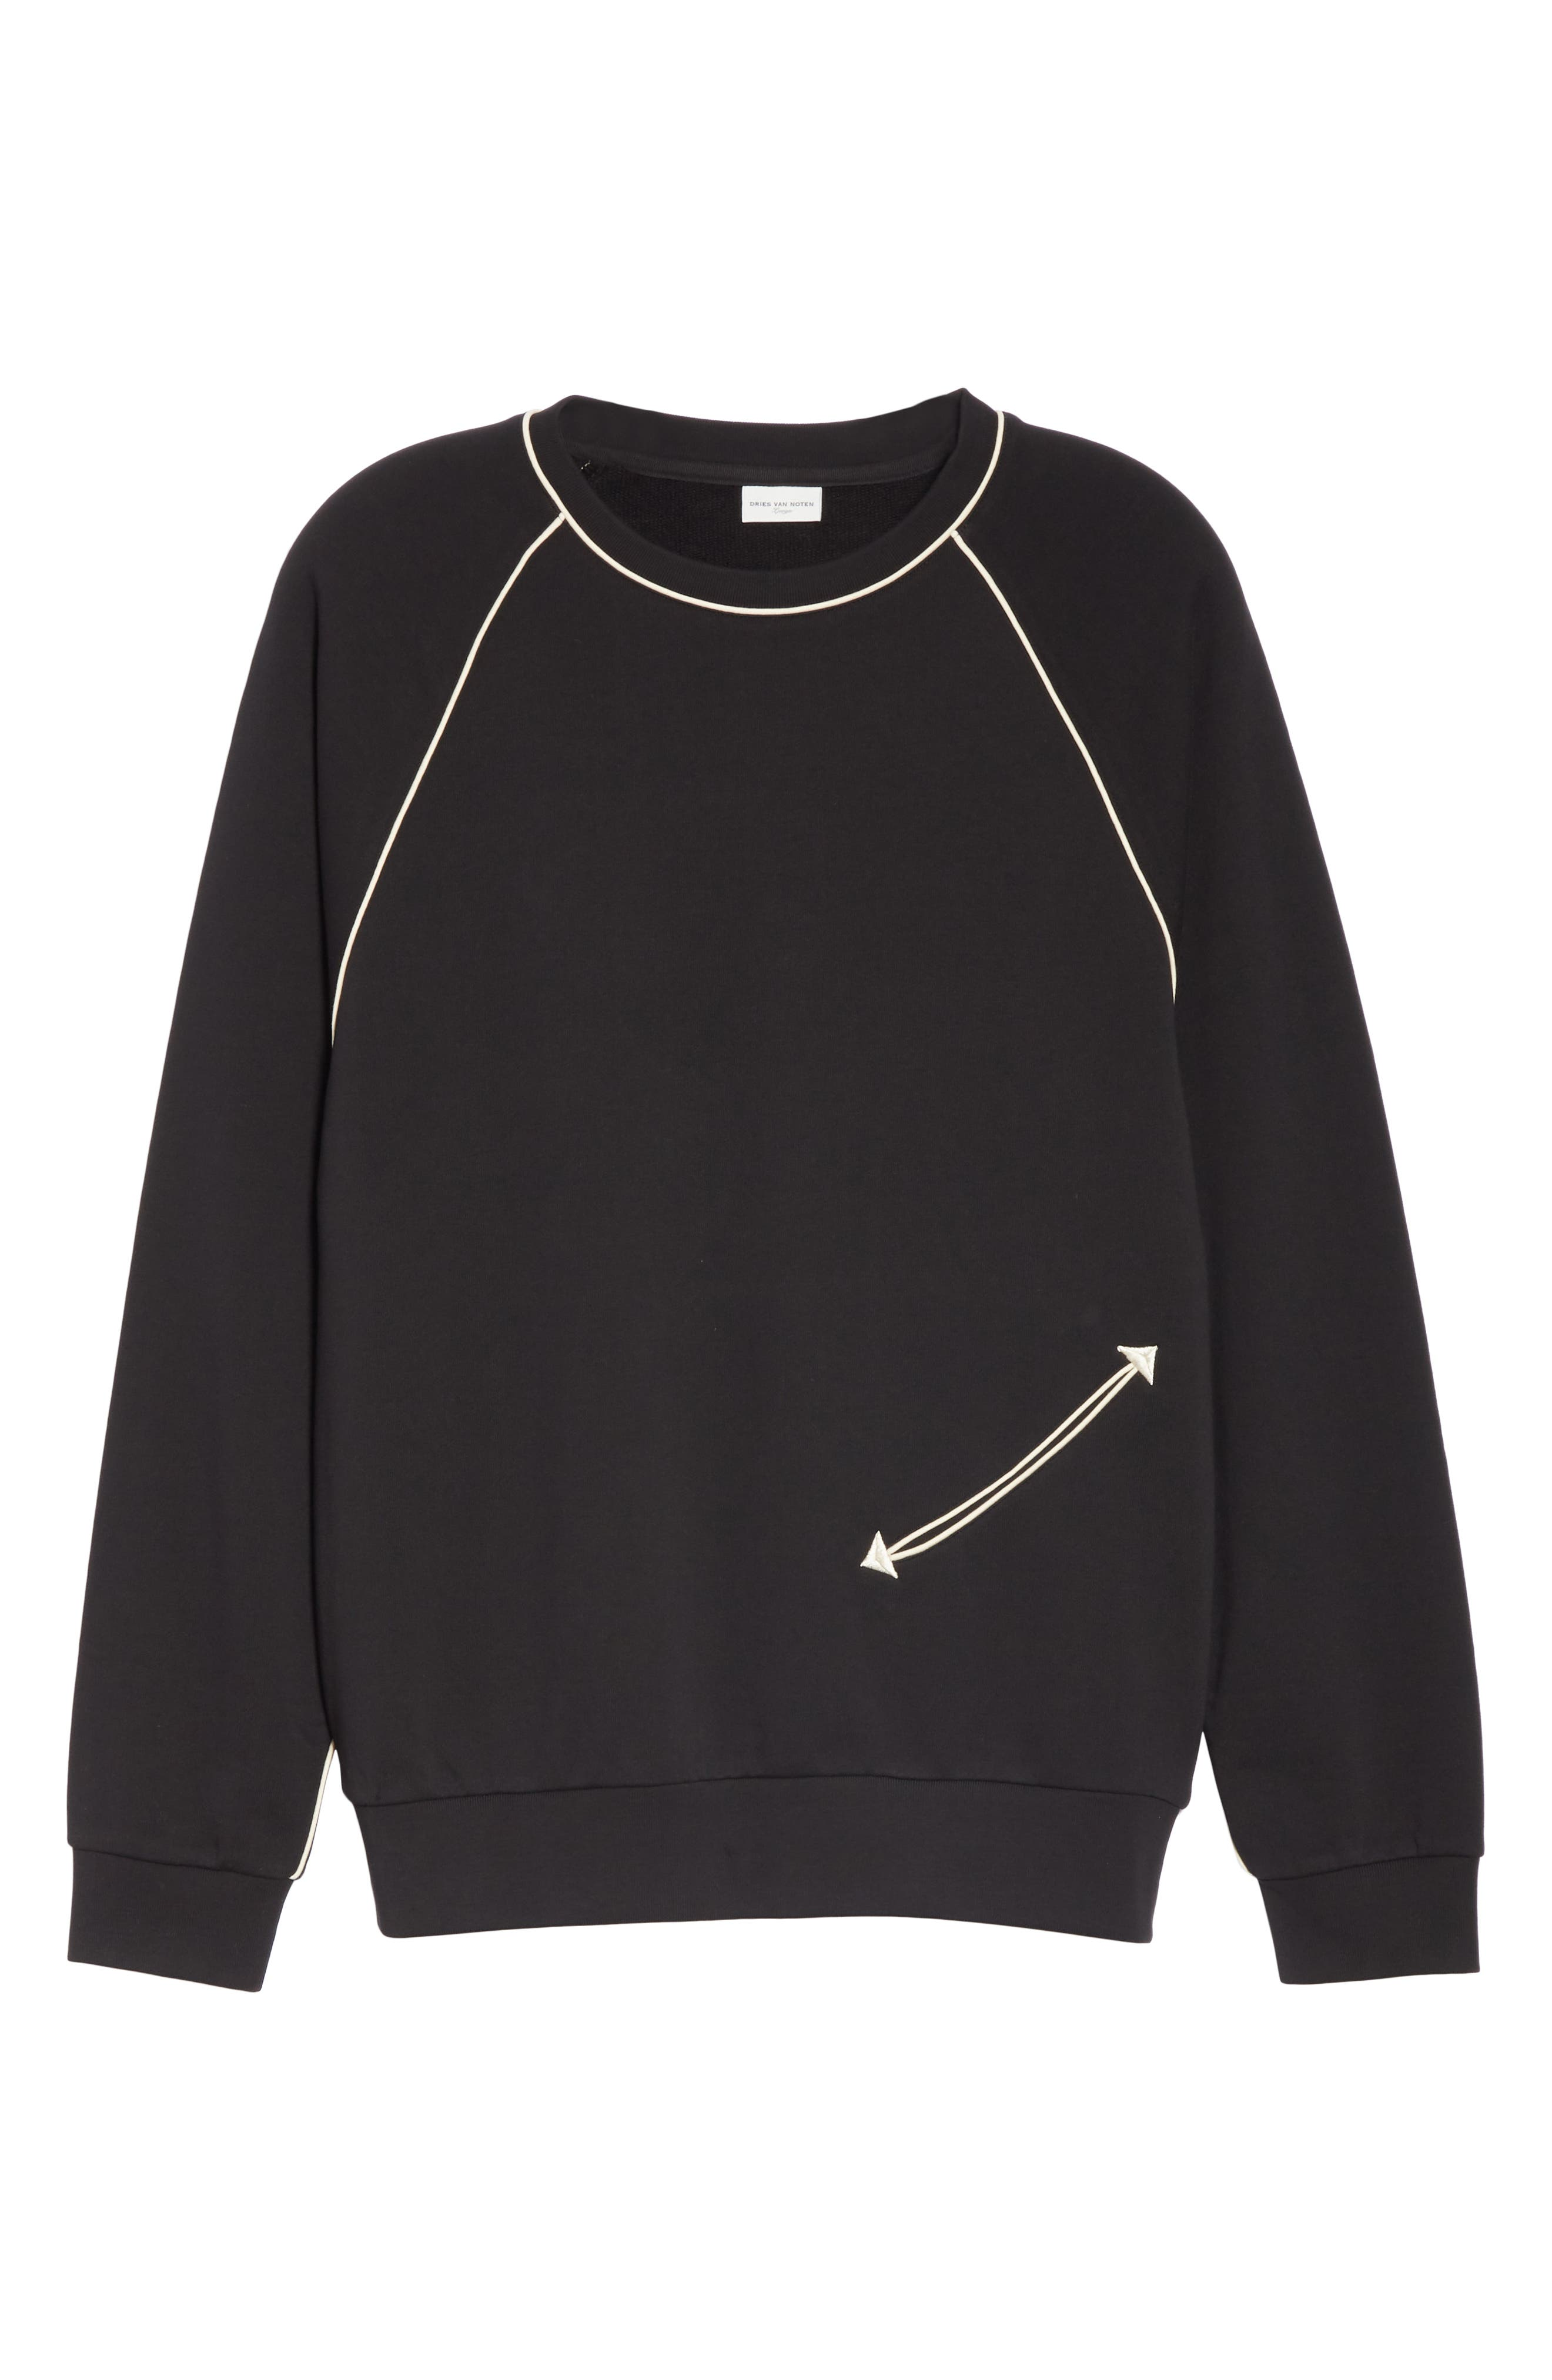 Western Piped Sweatshirt,                             Alternate thumbnail 6, color,                             900 BLACK